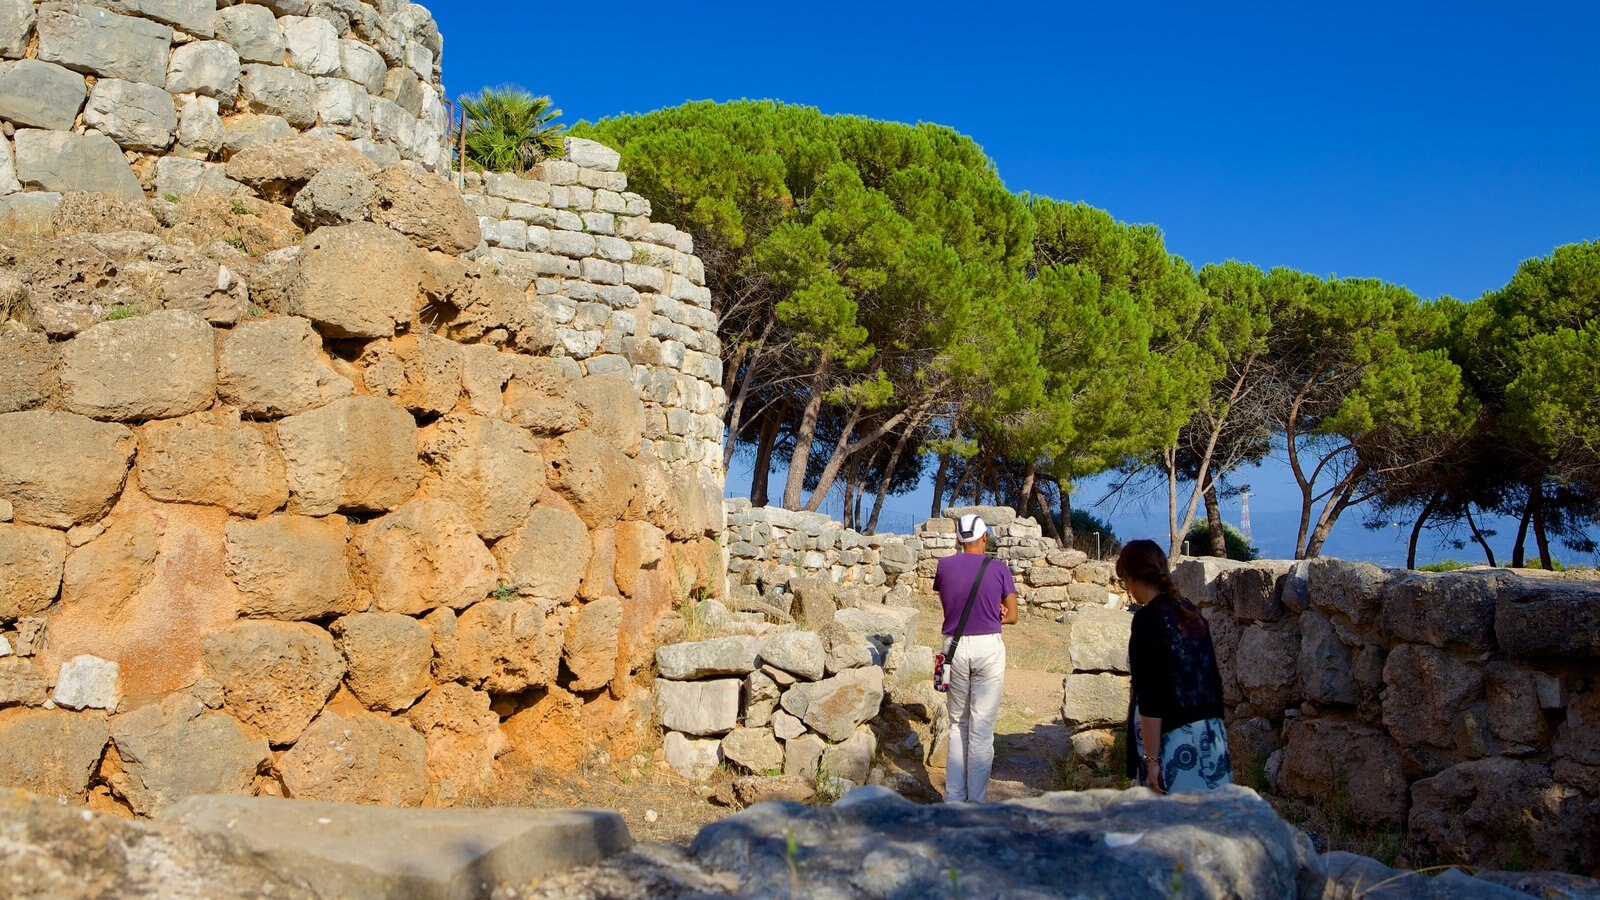 Nuraghe di Palmavera featuring heritage architecture, building ruins and heritage elements